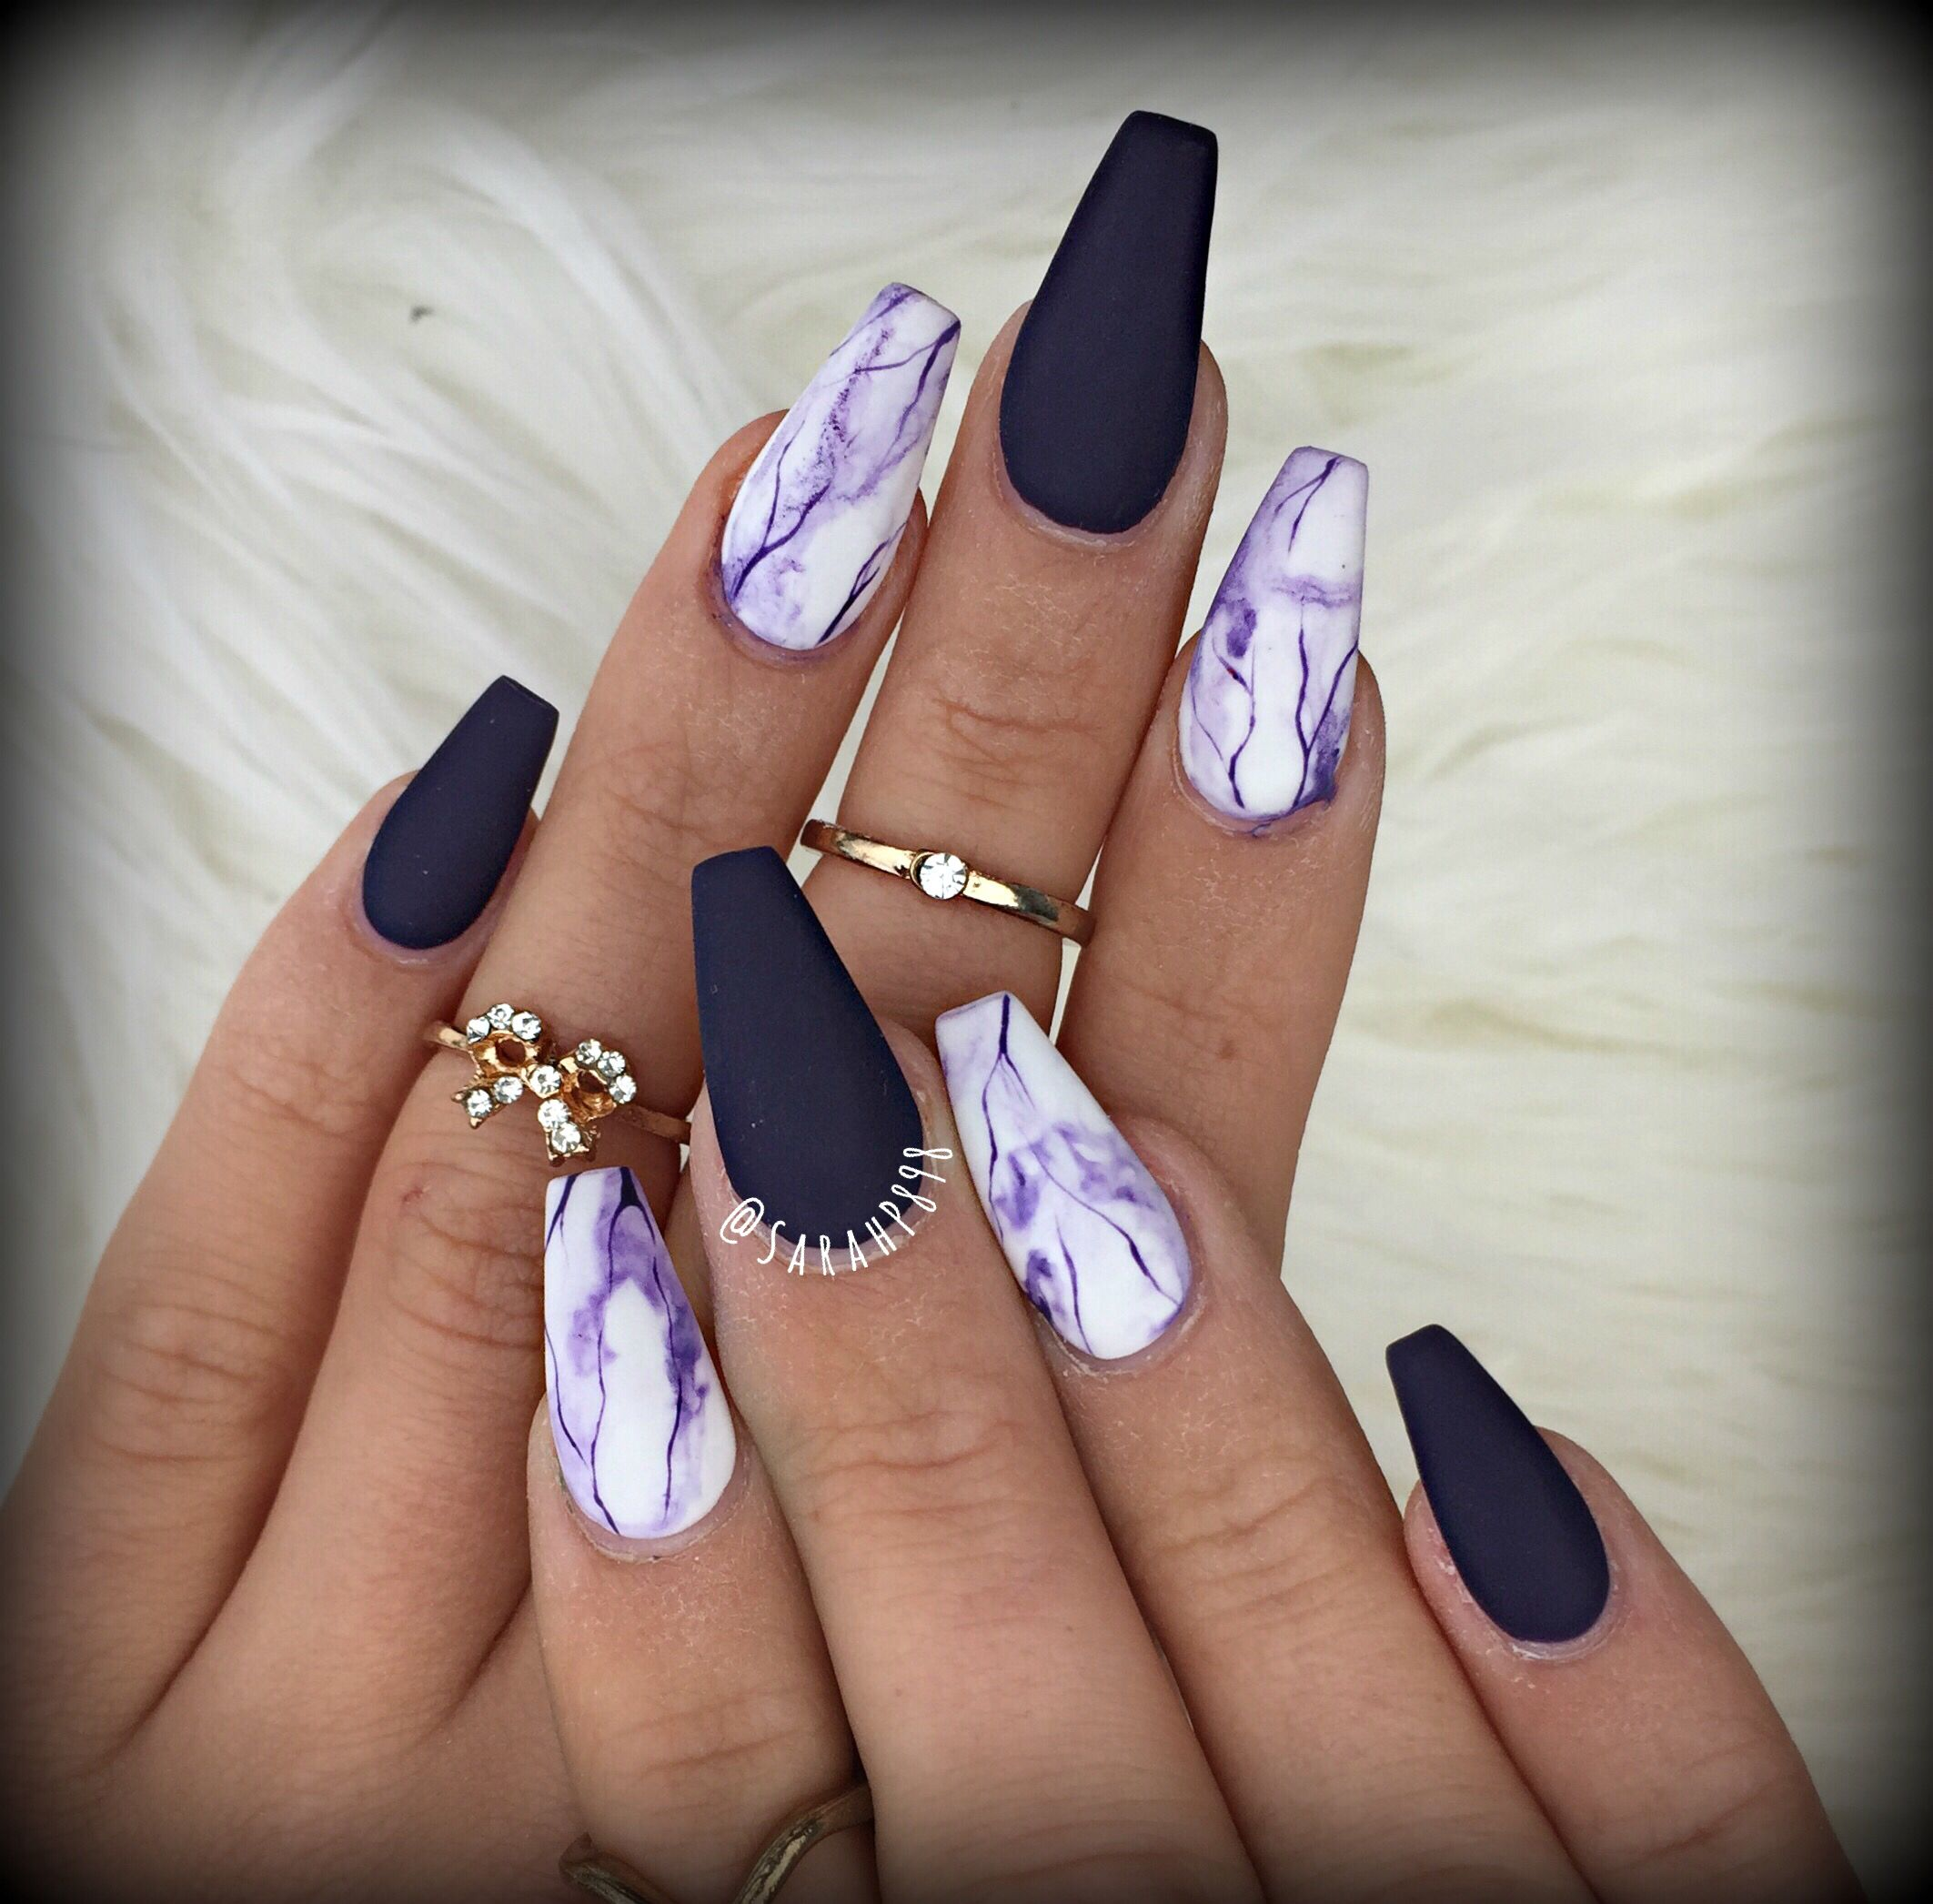 debbiedebo1 | | ••Nails•• | Pinterest | Matte purple nails, Purple ...